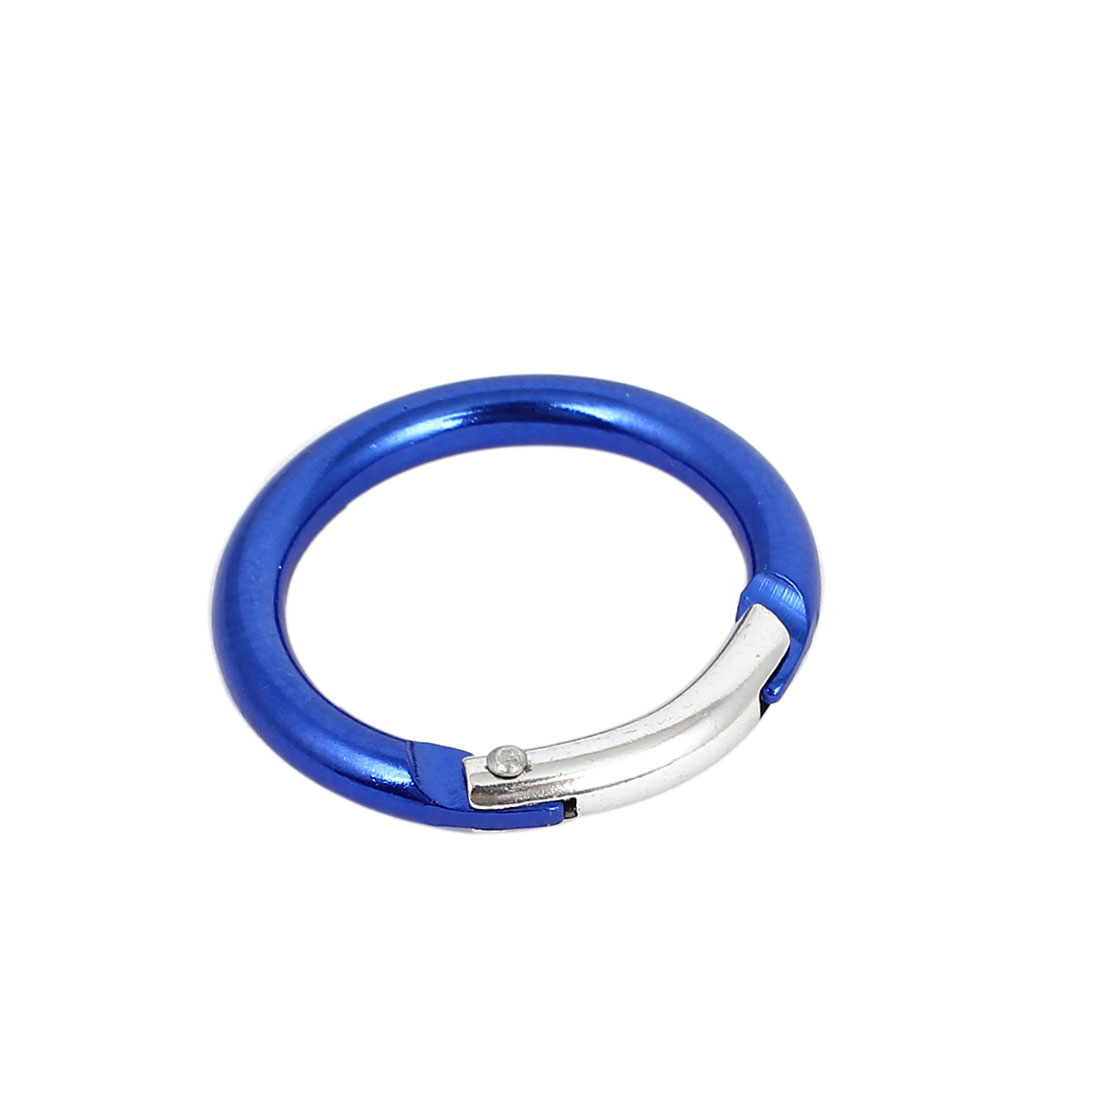 Travel Camping Hiking Aluminum Round Clip Hook Keychain Carabiner Blue